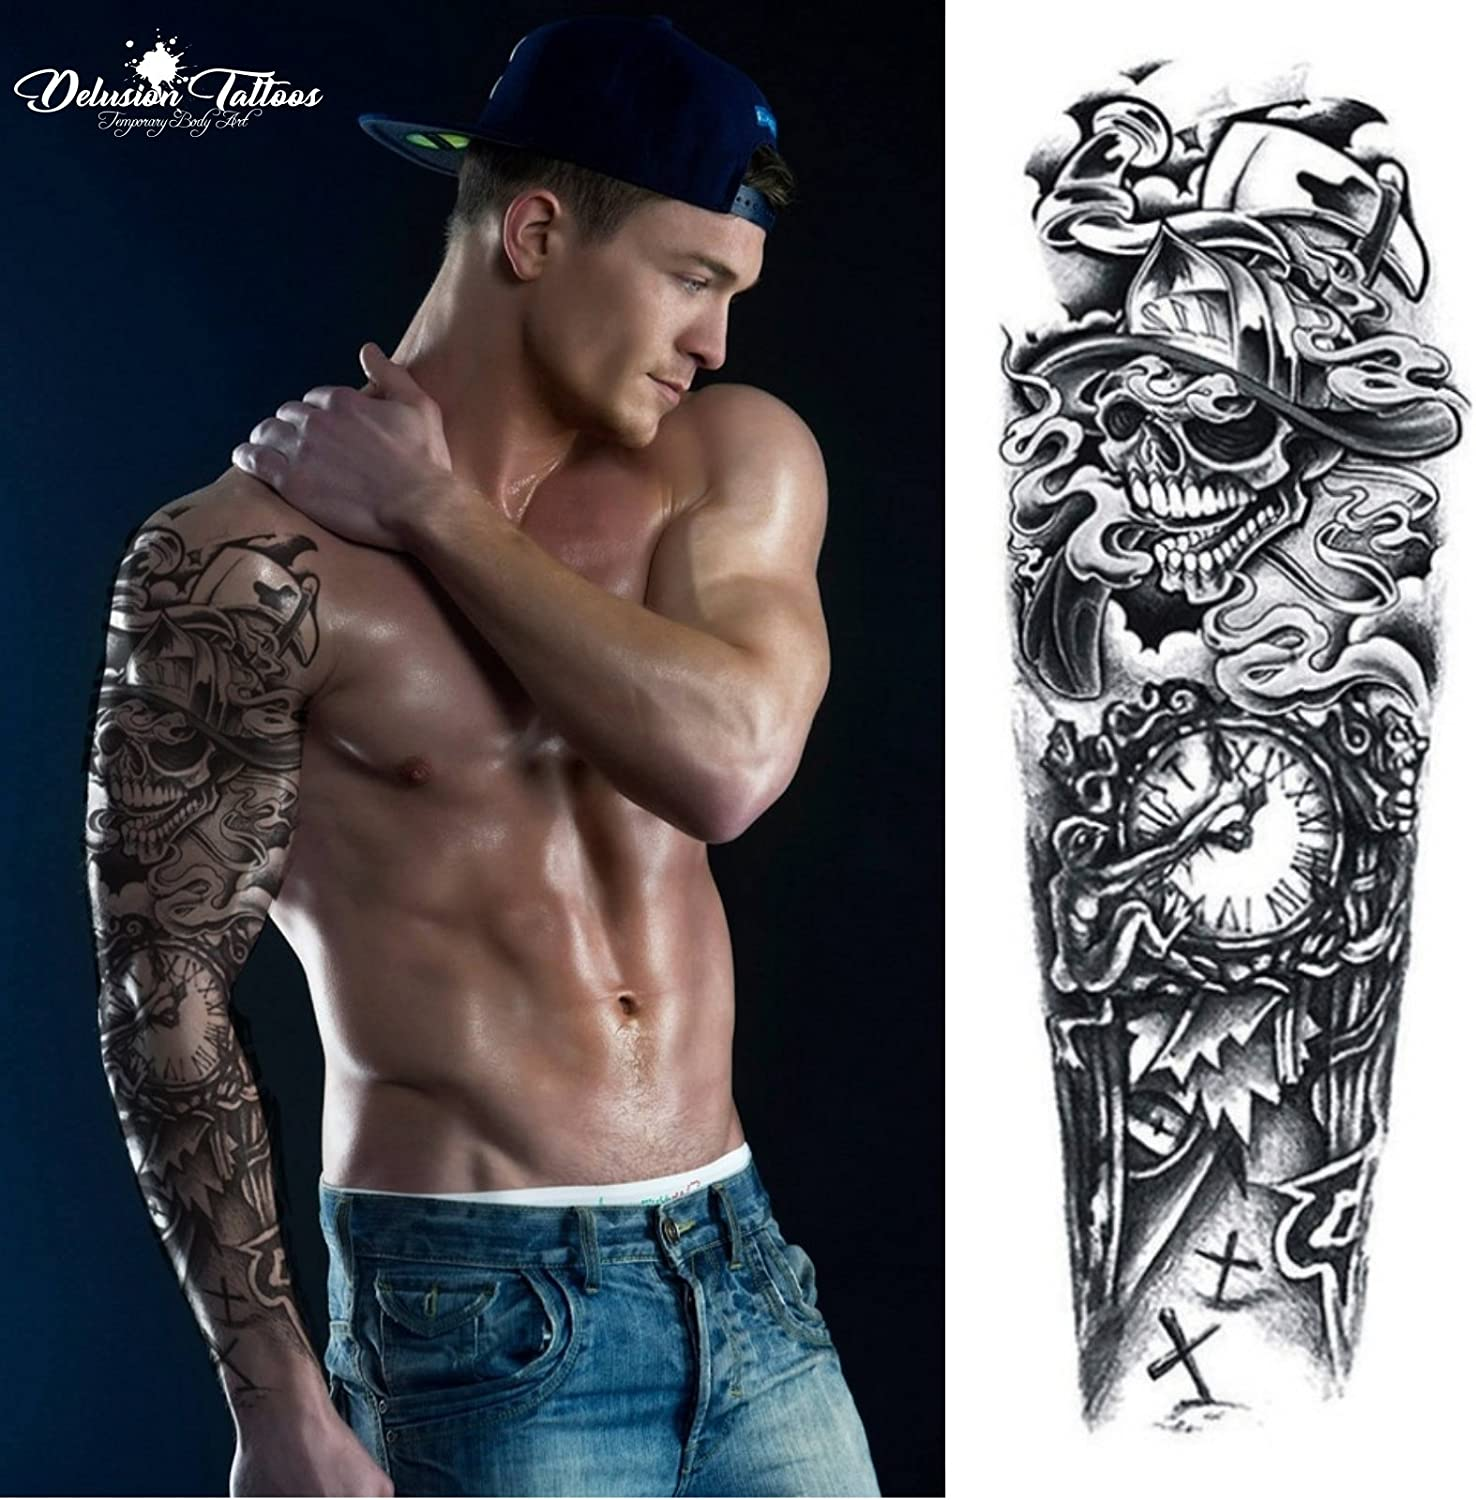 Temporary Tattoo Sleeve Realistic Transfer Sticker Death Skull Clock Fireman Axe Arm Leg Black Mens Womens Kids Waterproof Amazon Co Uk Beauty